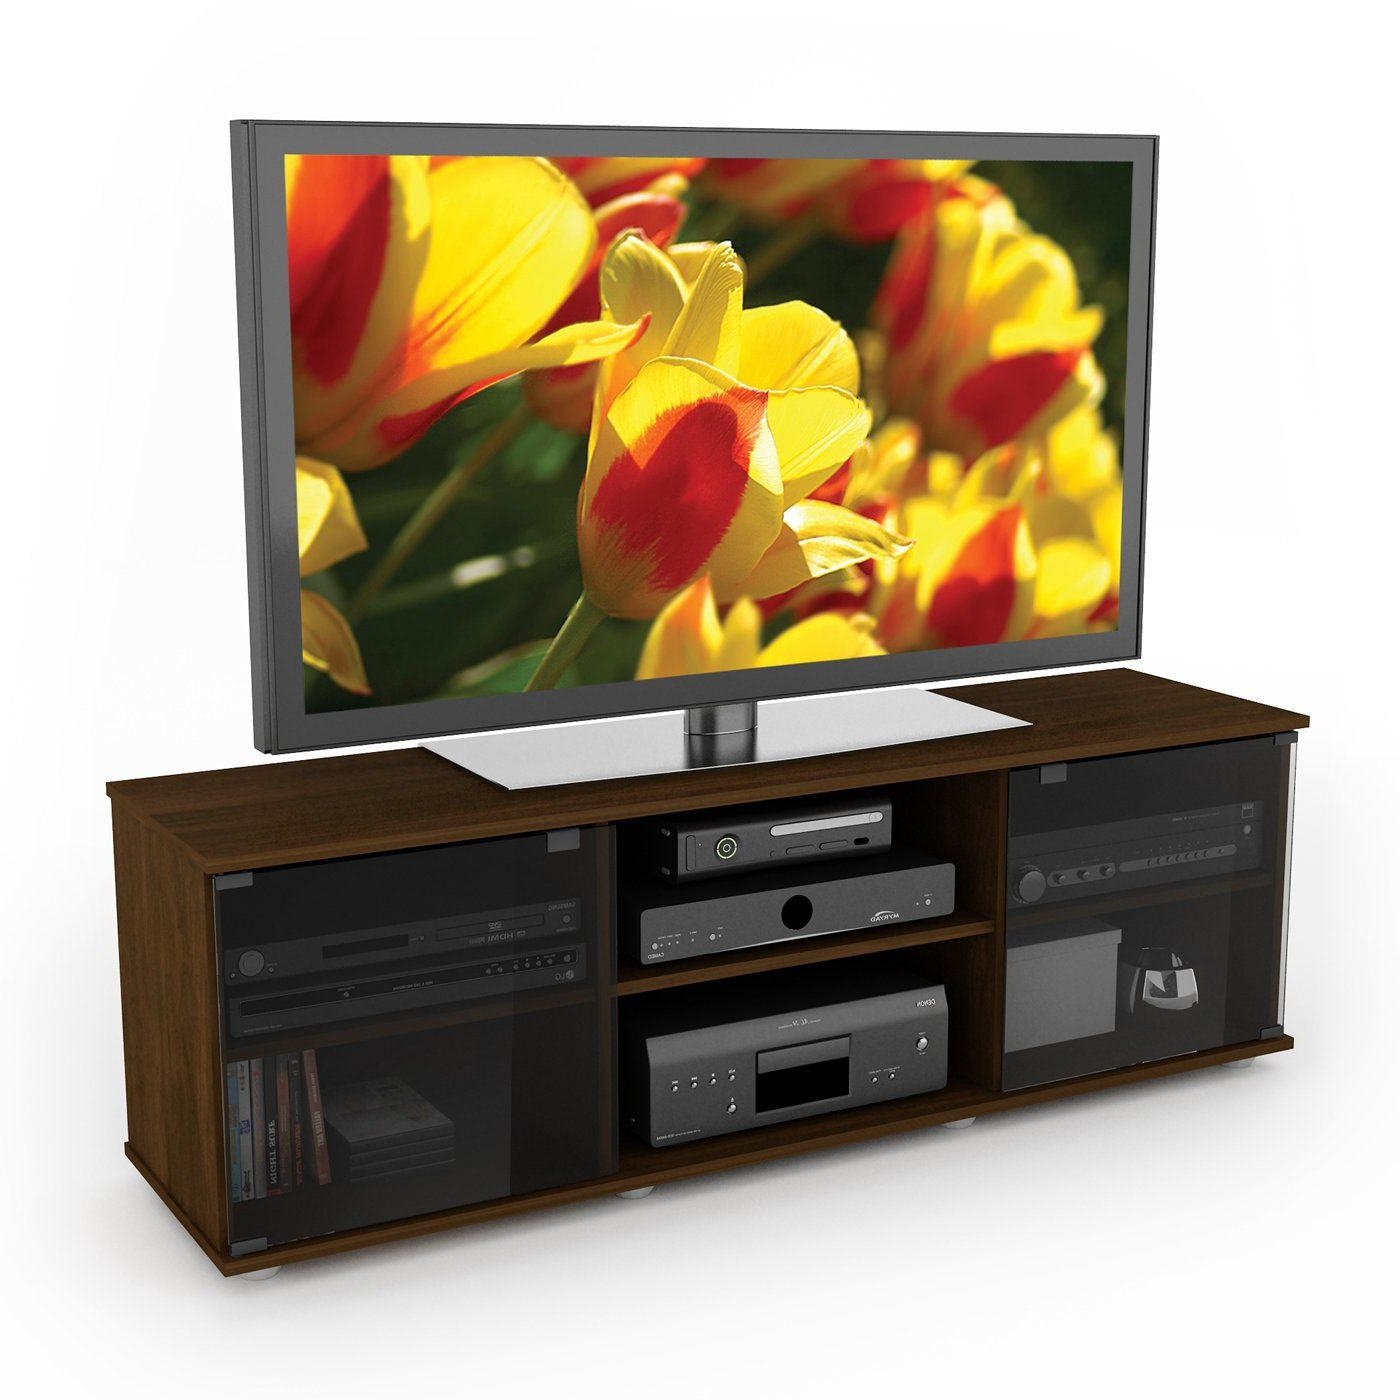 Well Known Sonax Fb 2607 Fiji Tv/component Bench, Urban Maple Finish $199 Home Within Maple Tv Stands For Flat Screens (View 20 of 20)